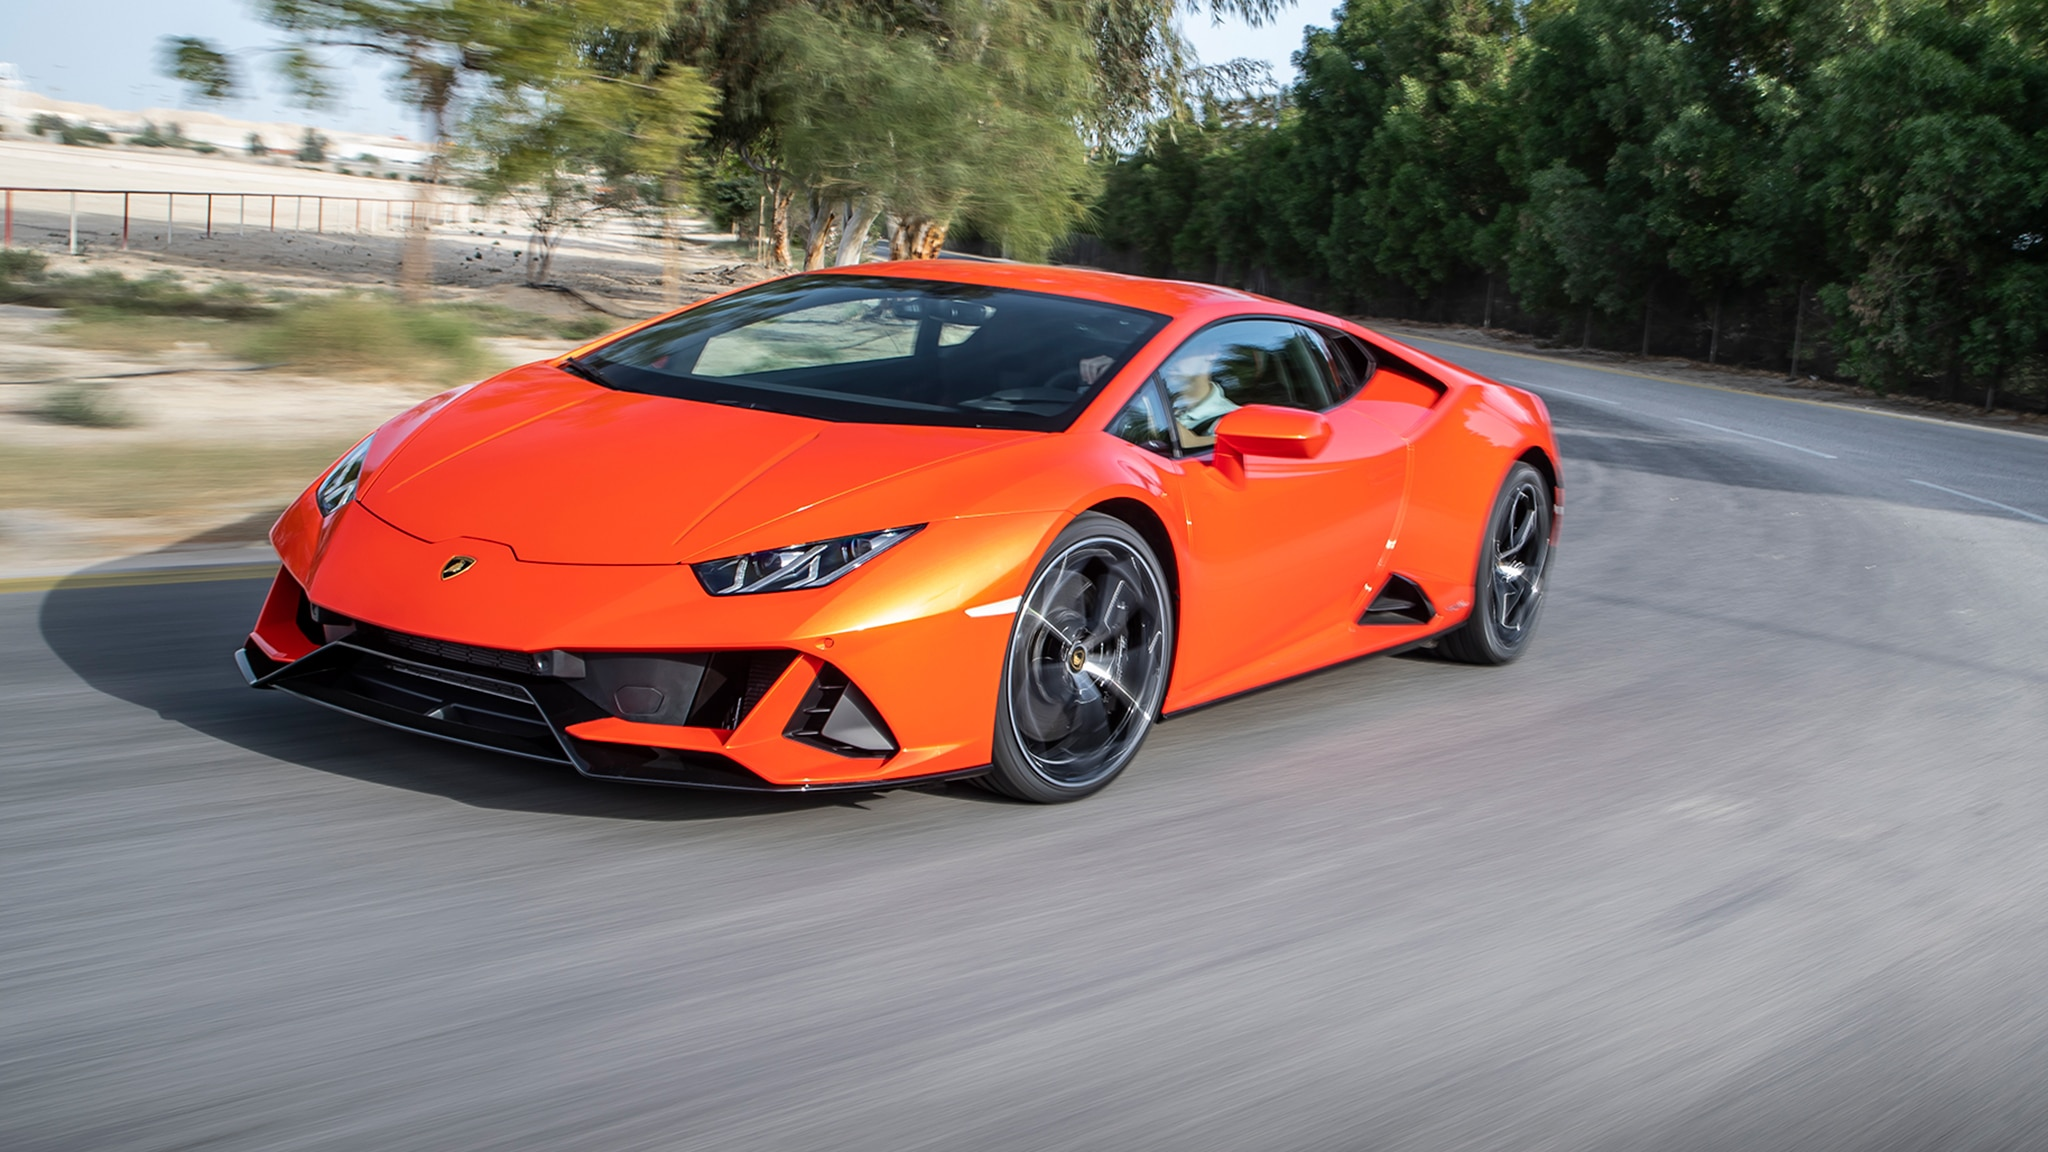 Lamborghini Huracan Evo Review It Freaking Rips Automobile Magazine